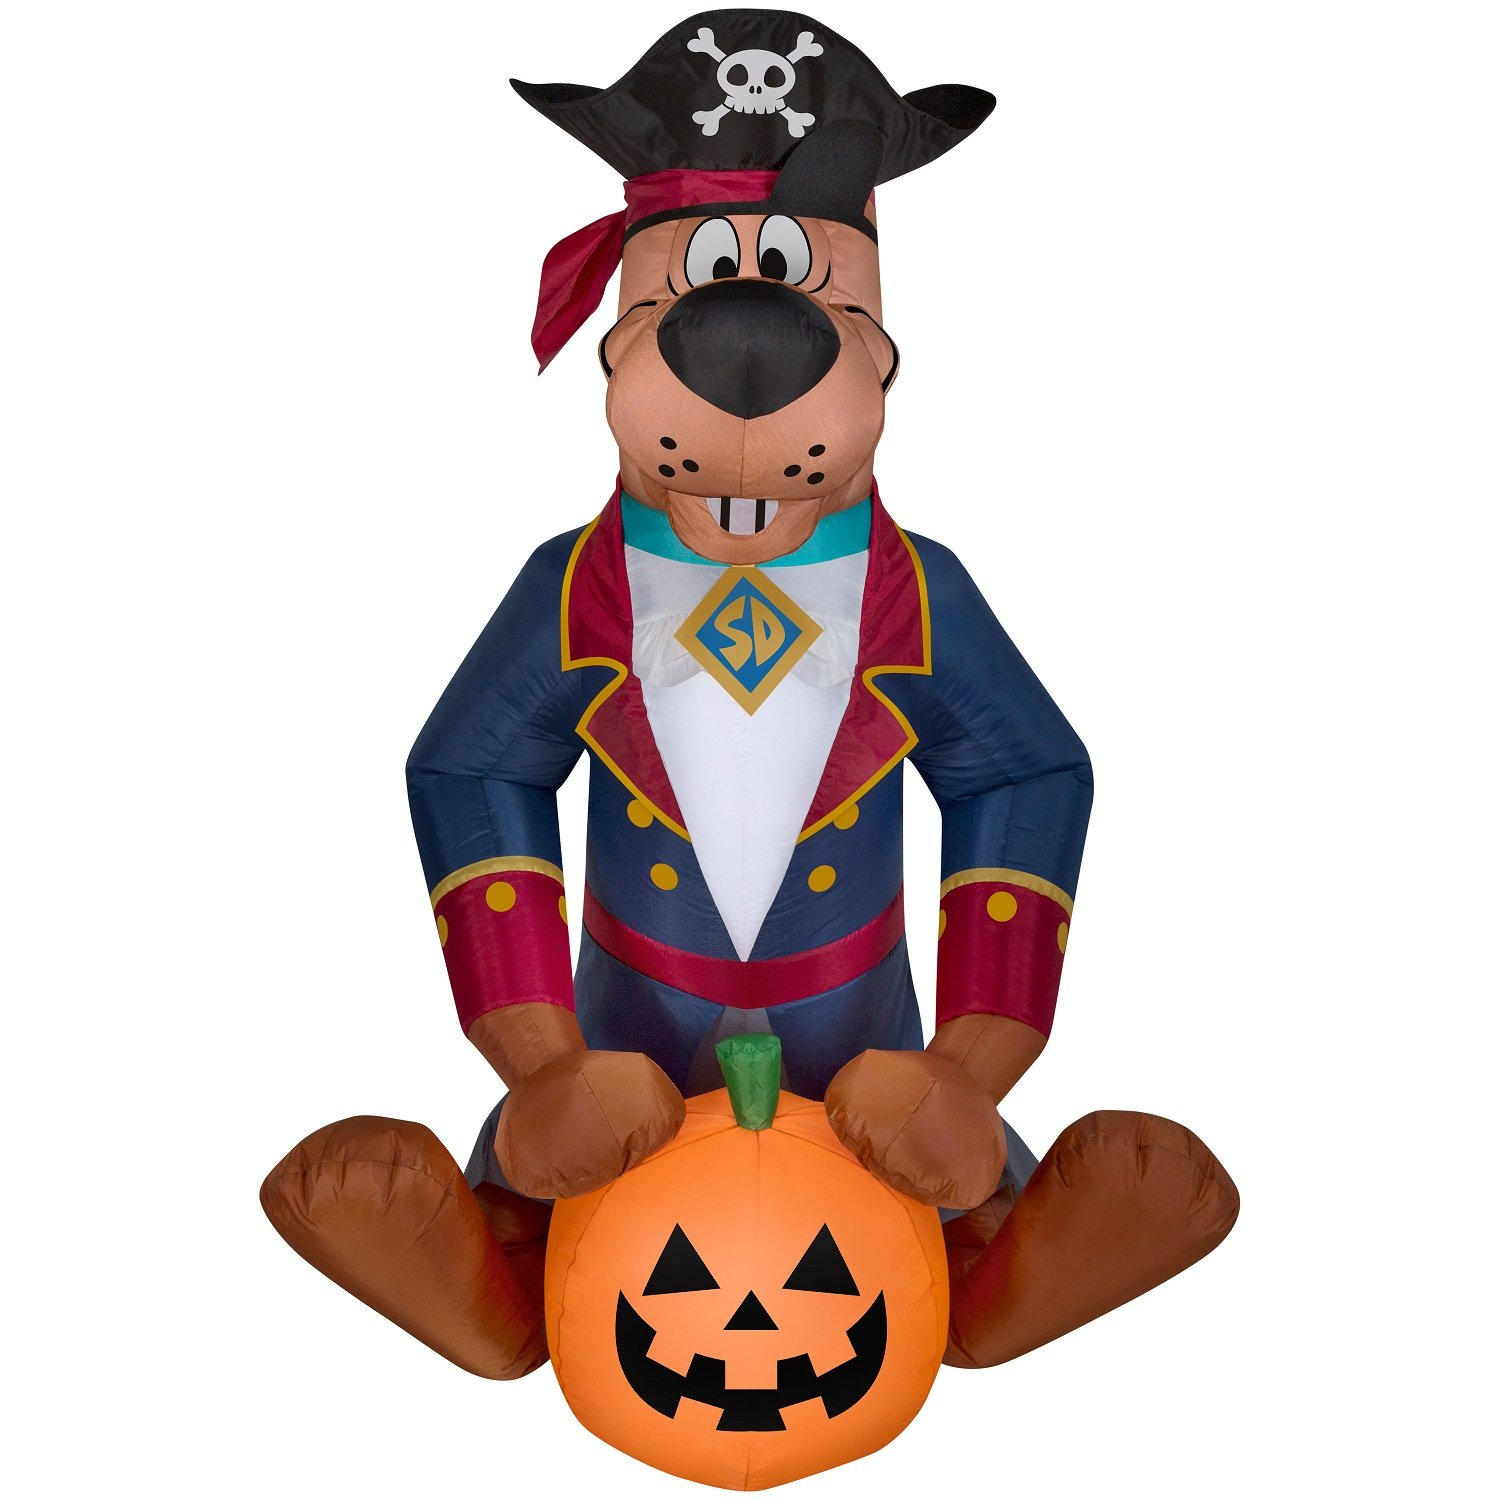 Halloween Inflatable Pirate Scooby Doo w/ Pumpkin By Gemmy